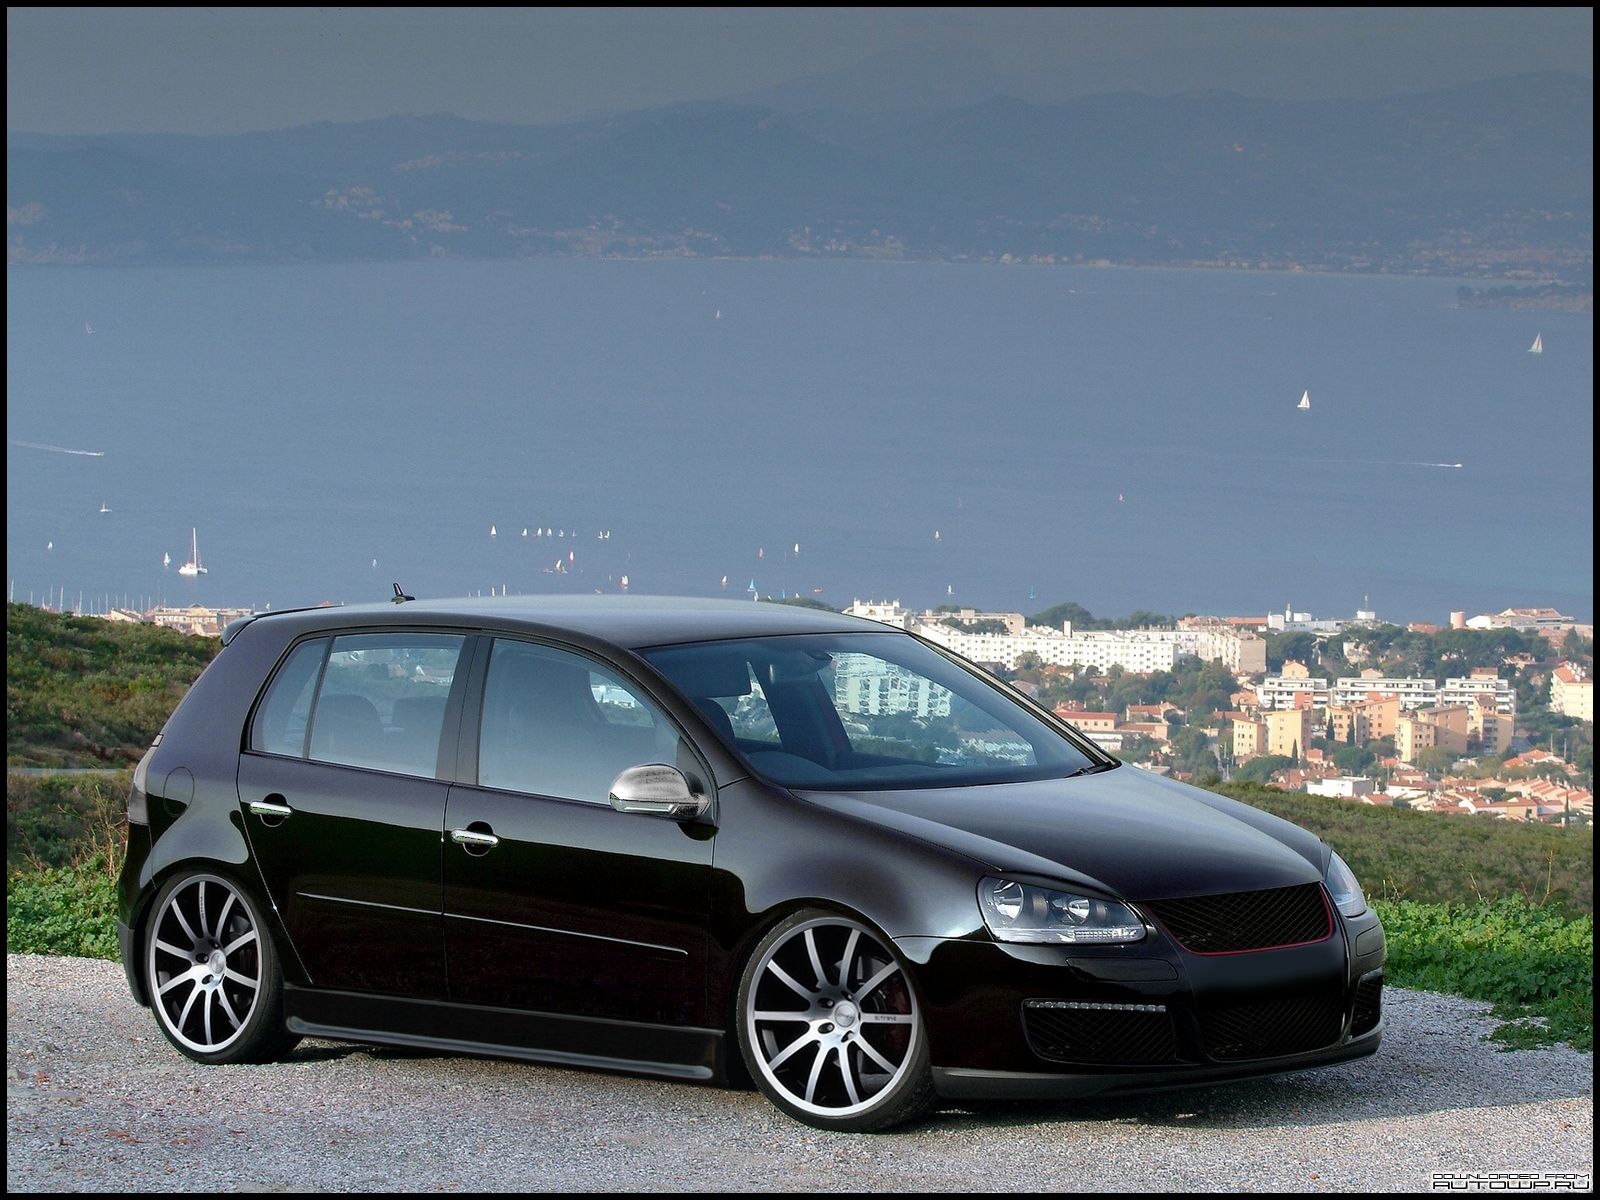 bilder von schwarzen golf 5 gti gesucht golf 4 forum. Black Bedroom Furniture Sets. Home Design Ideas